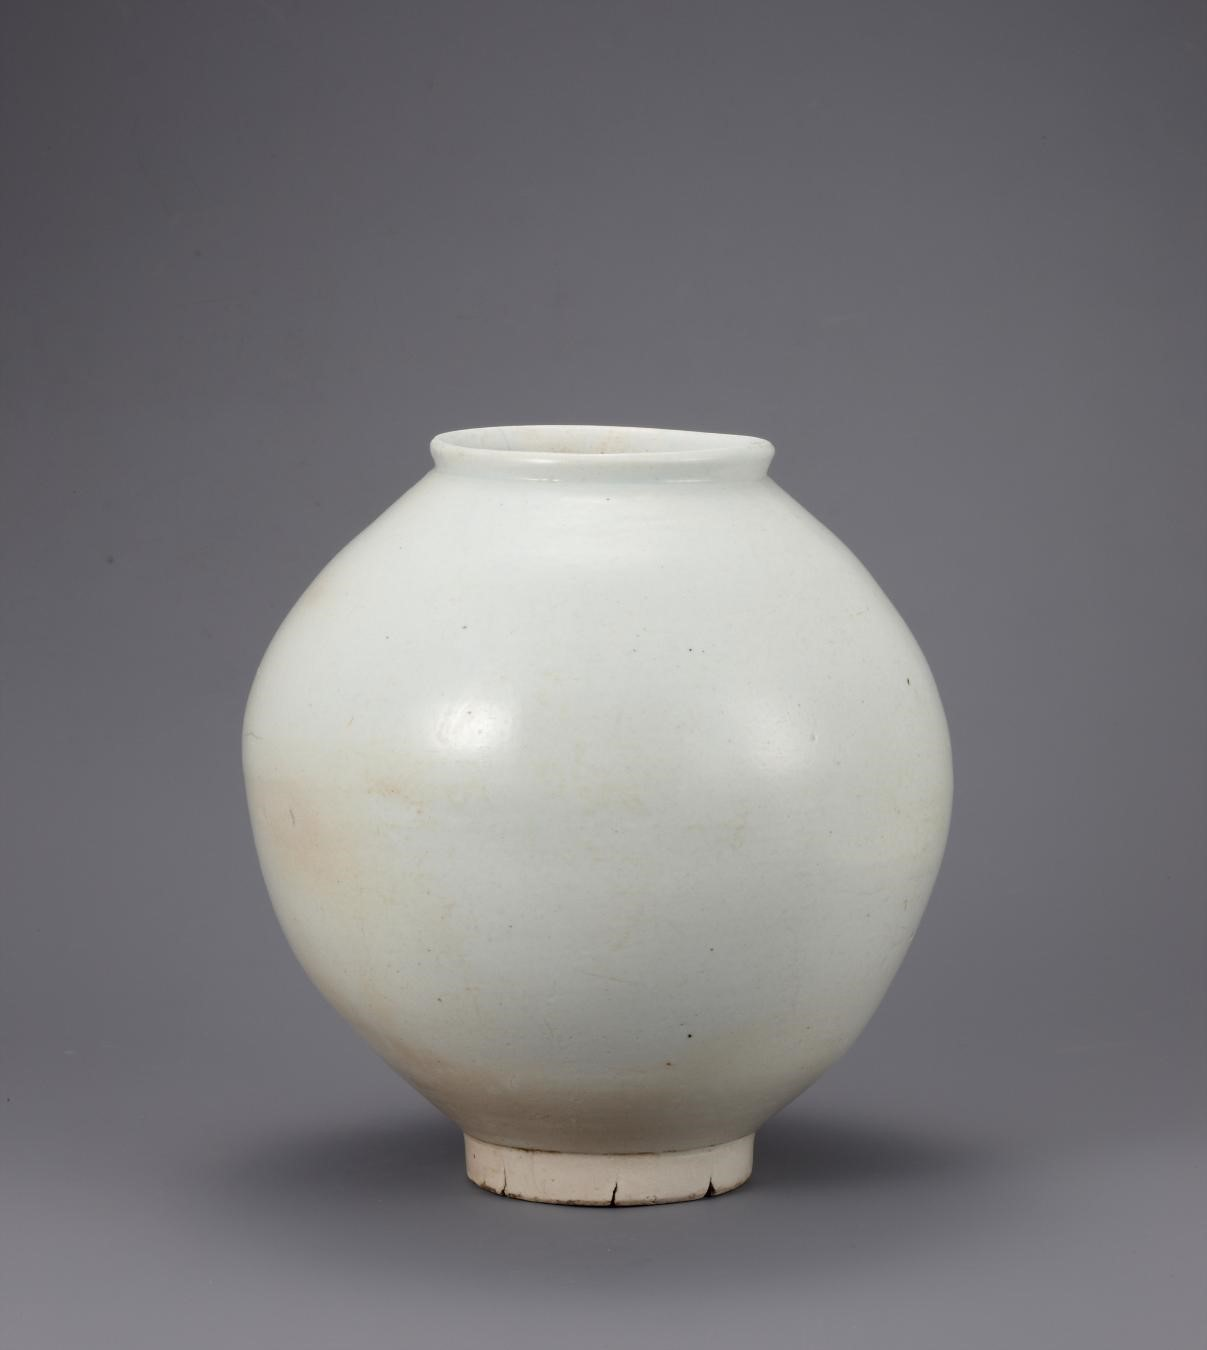 Korean, White Porcelain Jar, 18th century